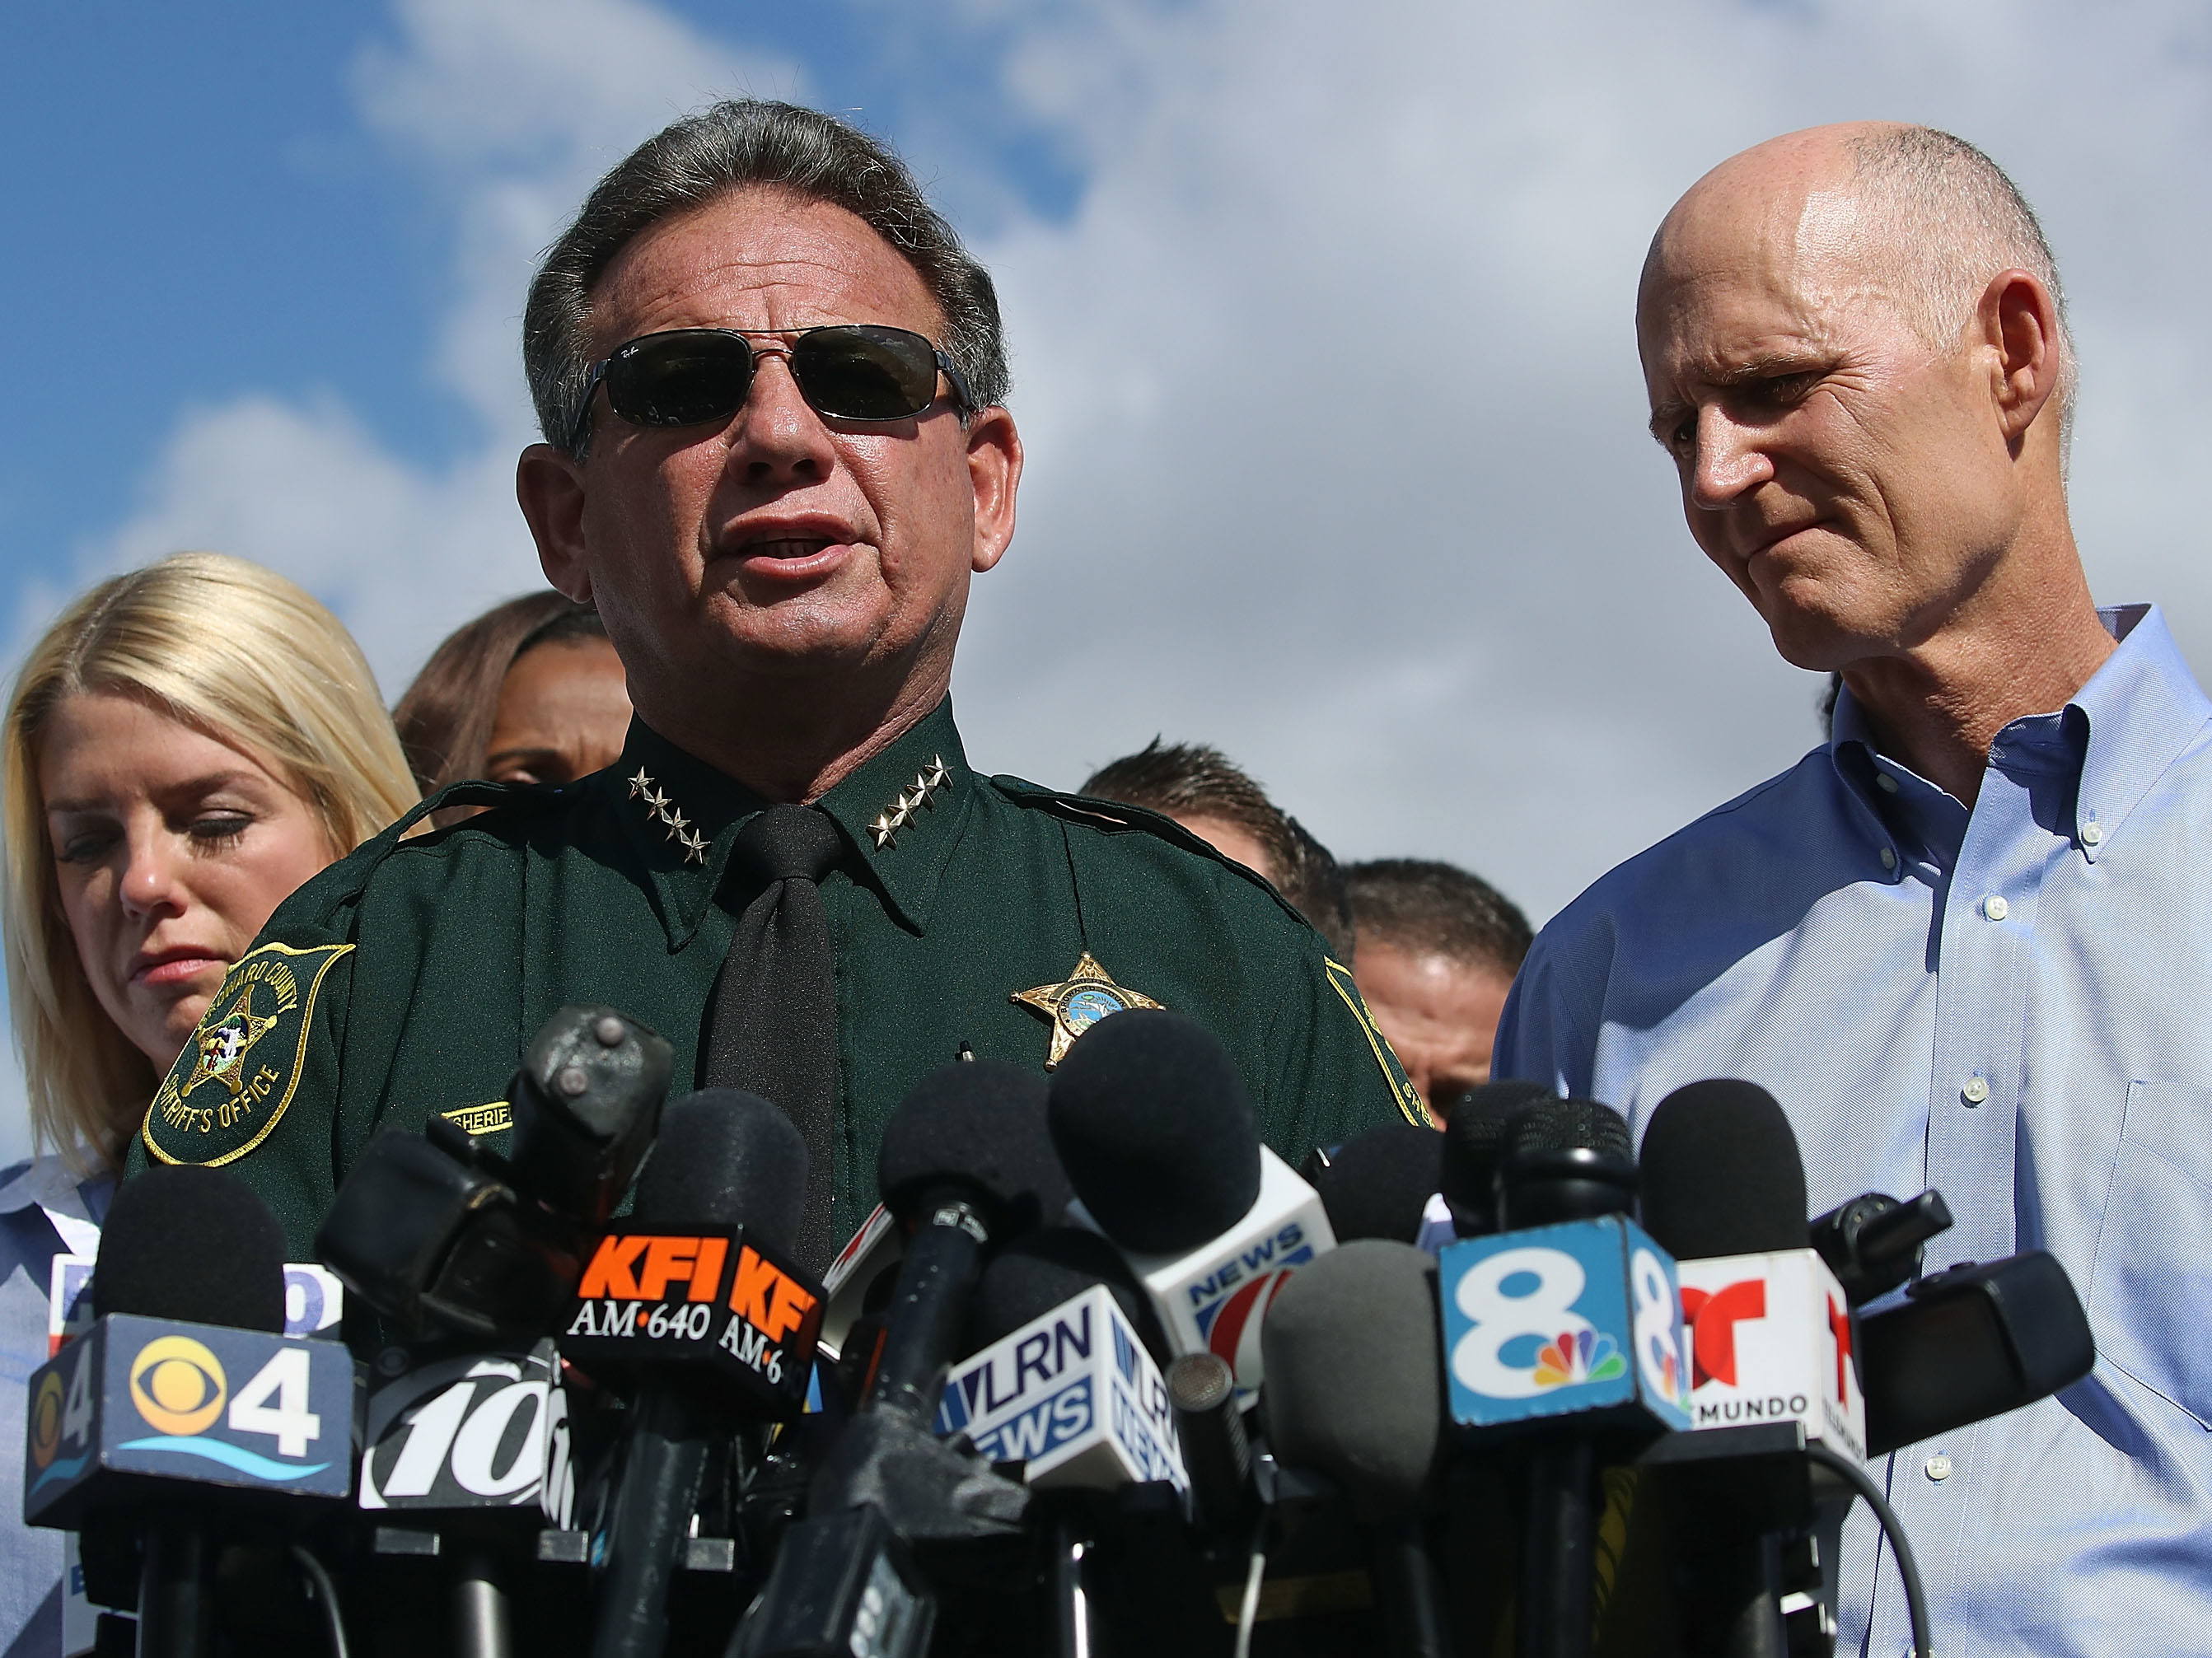 Some Republican lawmakers in Florida are calling on Gov. Rick Scott to remove Broward Sheriff Scott Israel. The sheriff (center) and Scott (right) are seen here on Feb. 15, the day after the shooting.